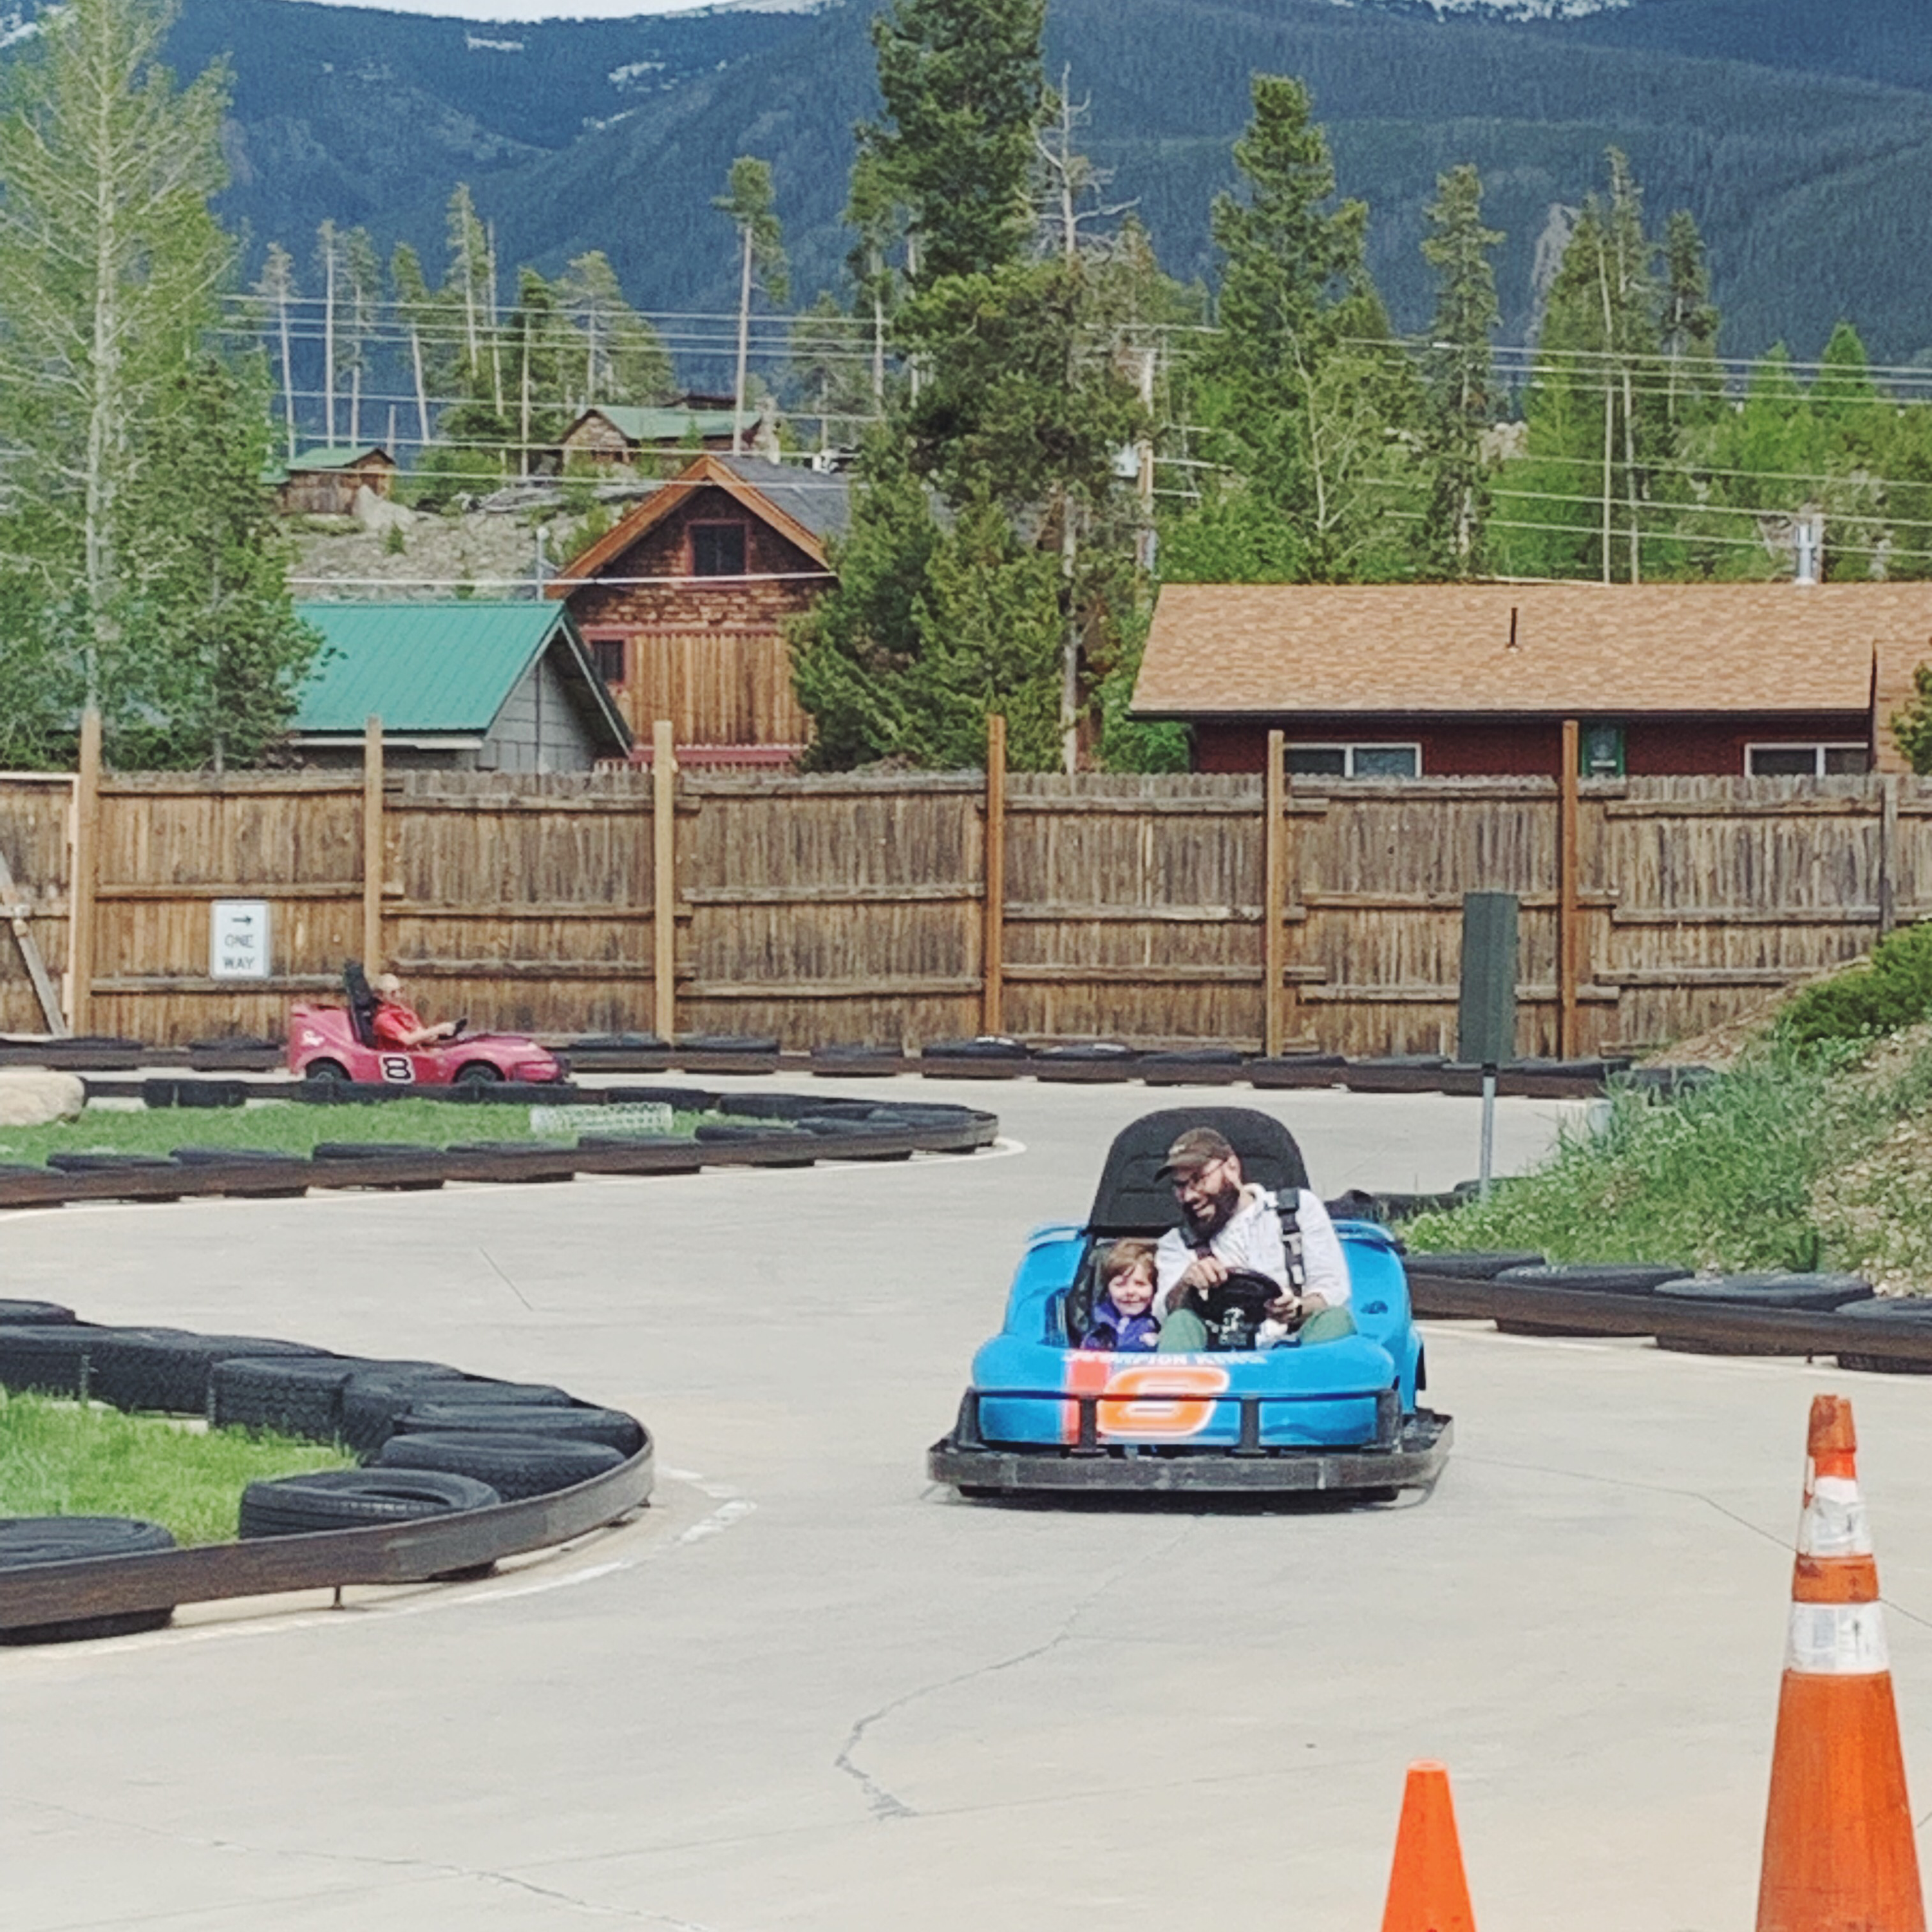 A father and son in a blue go kart.